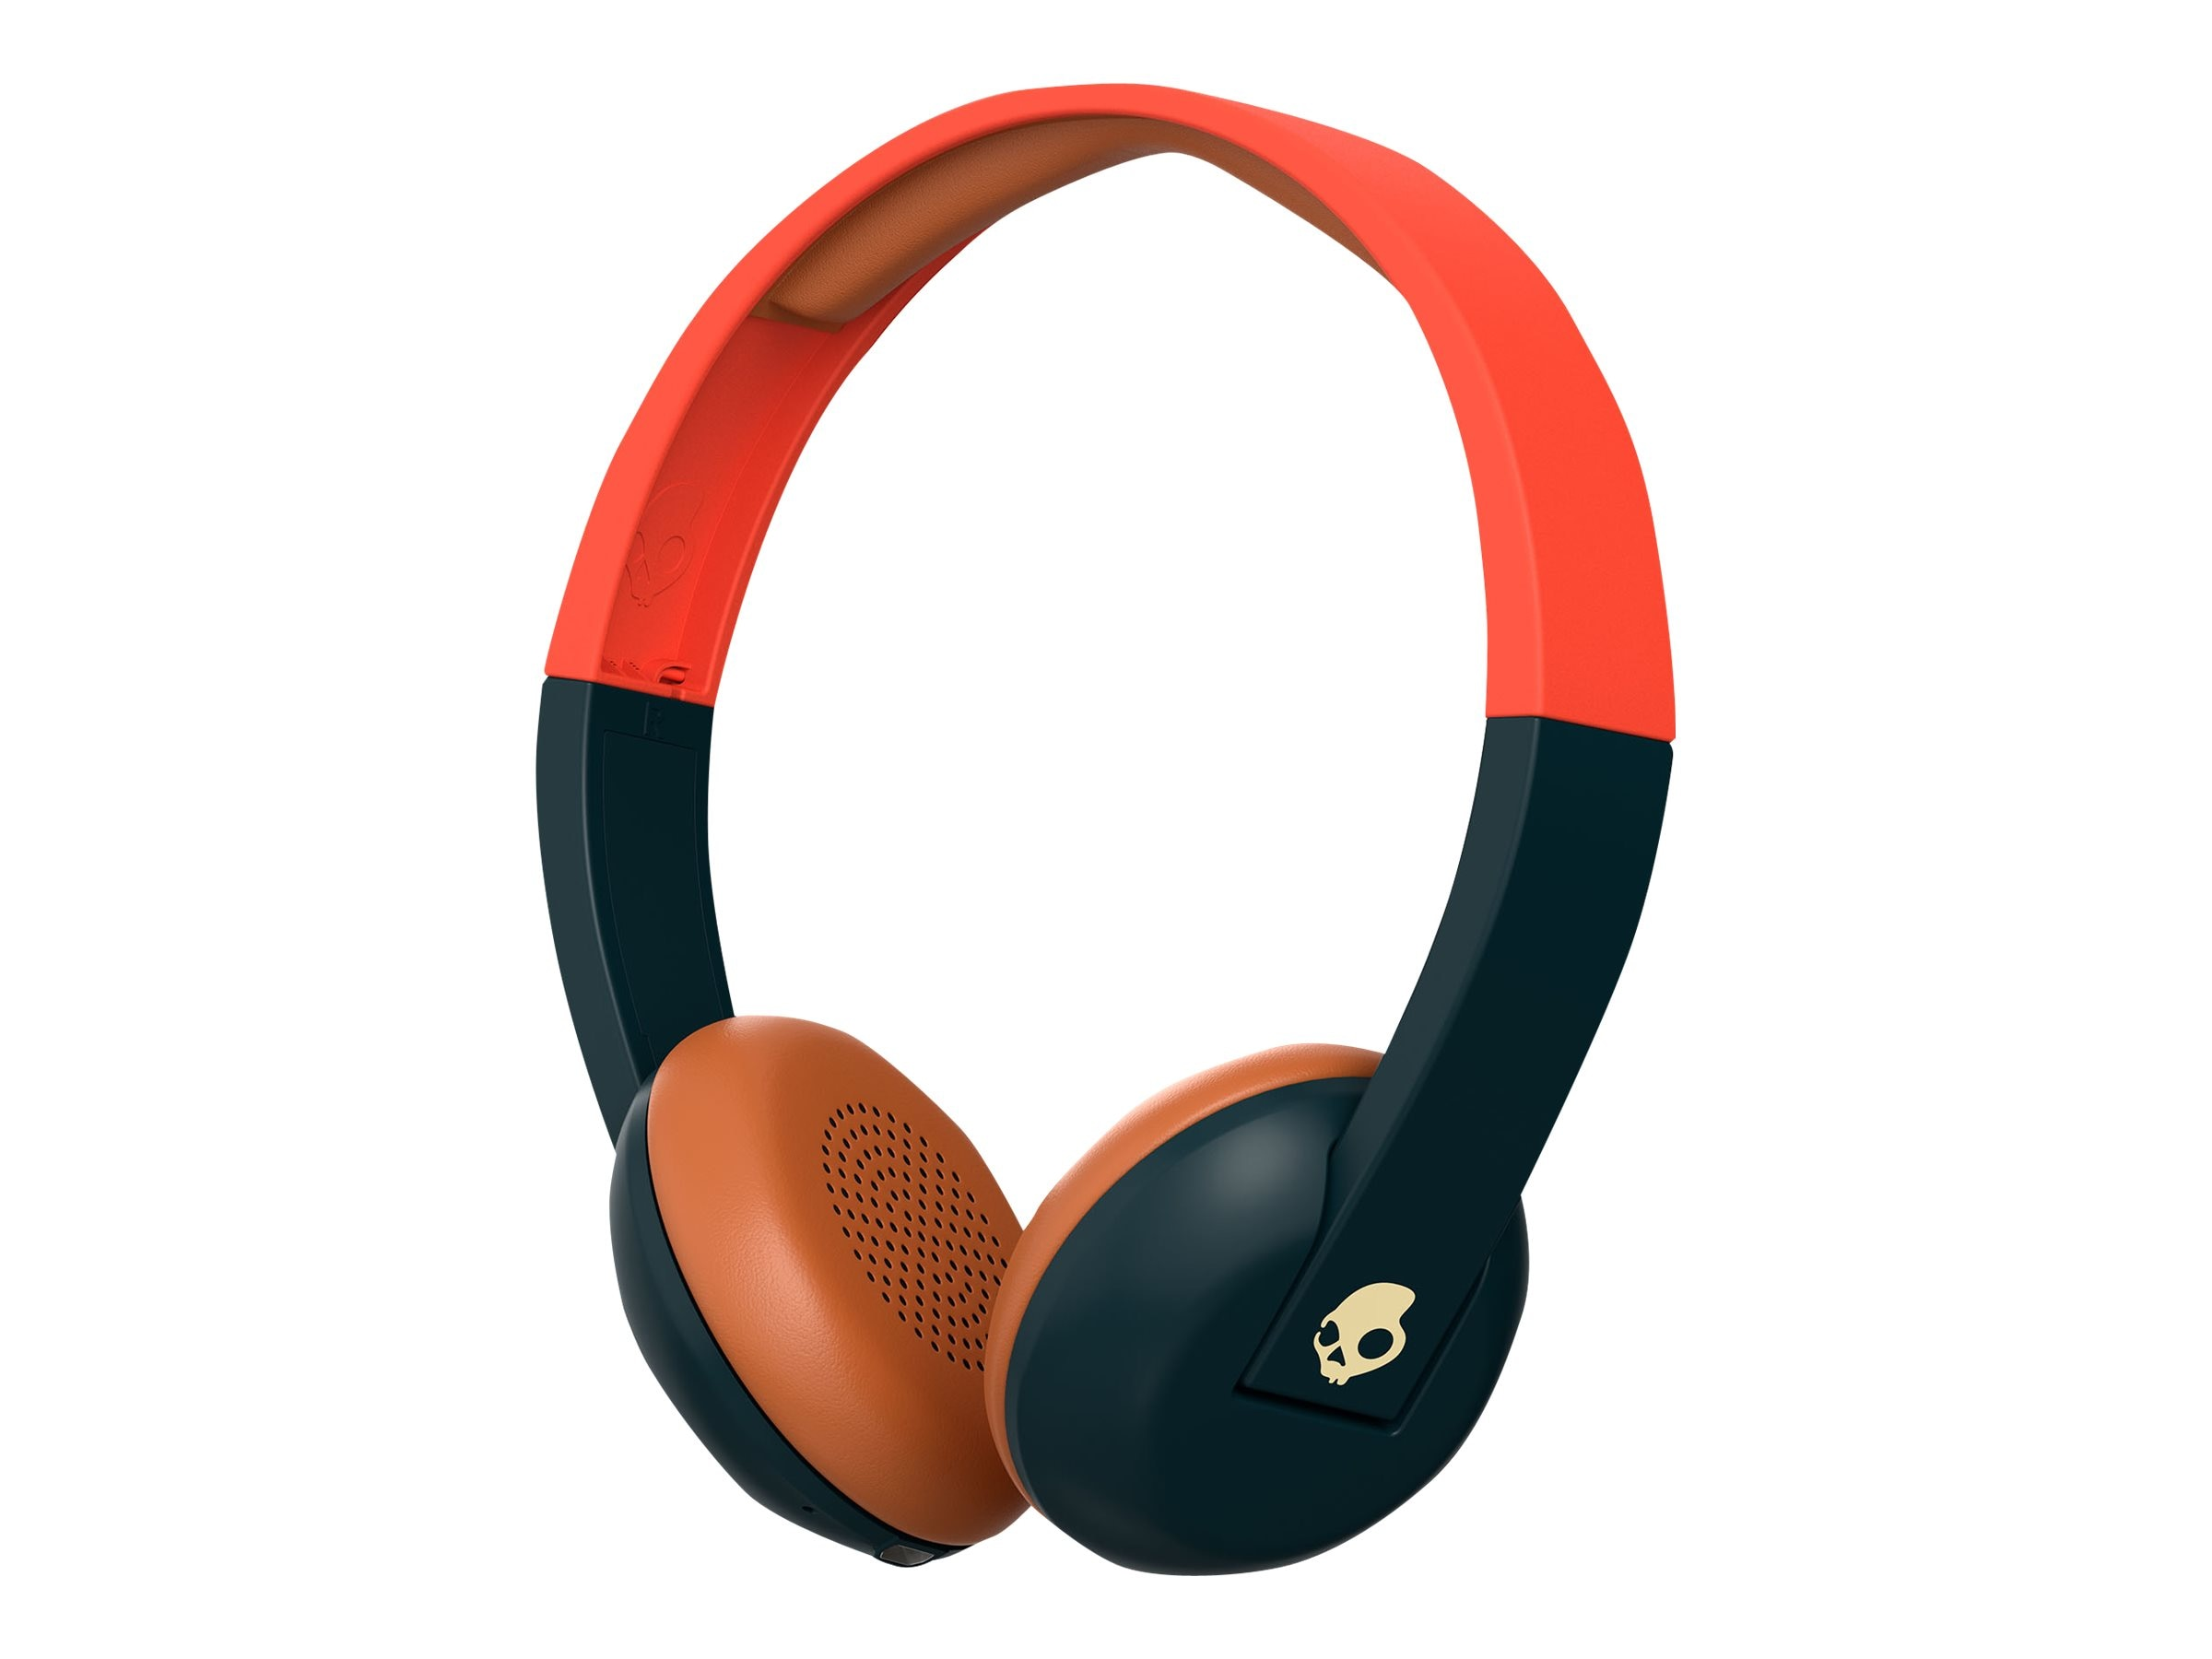 Skullcandy Uproar BT Headphones - Explore Evergreen